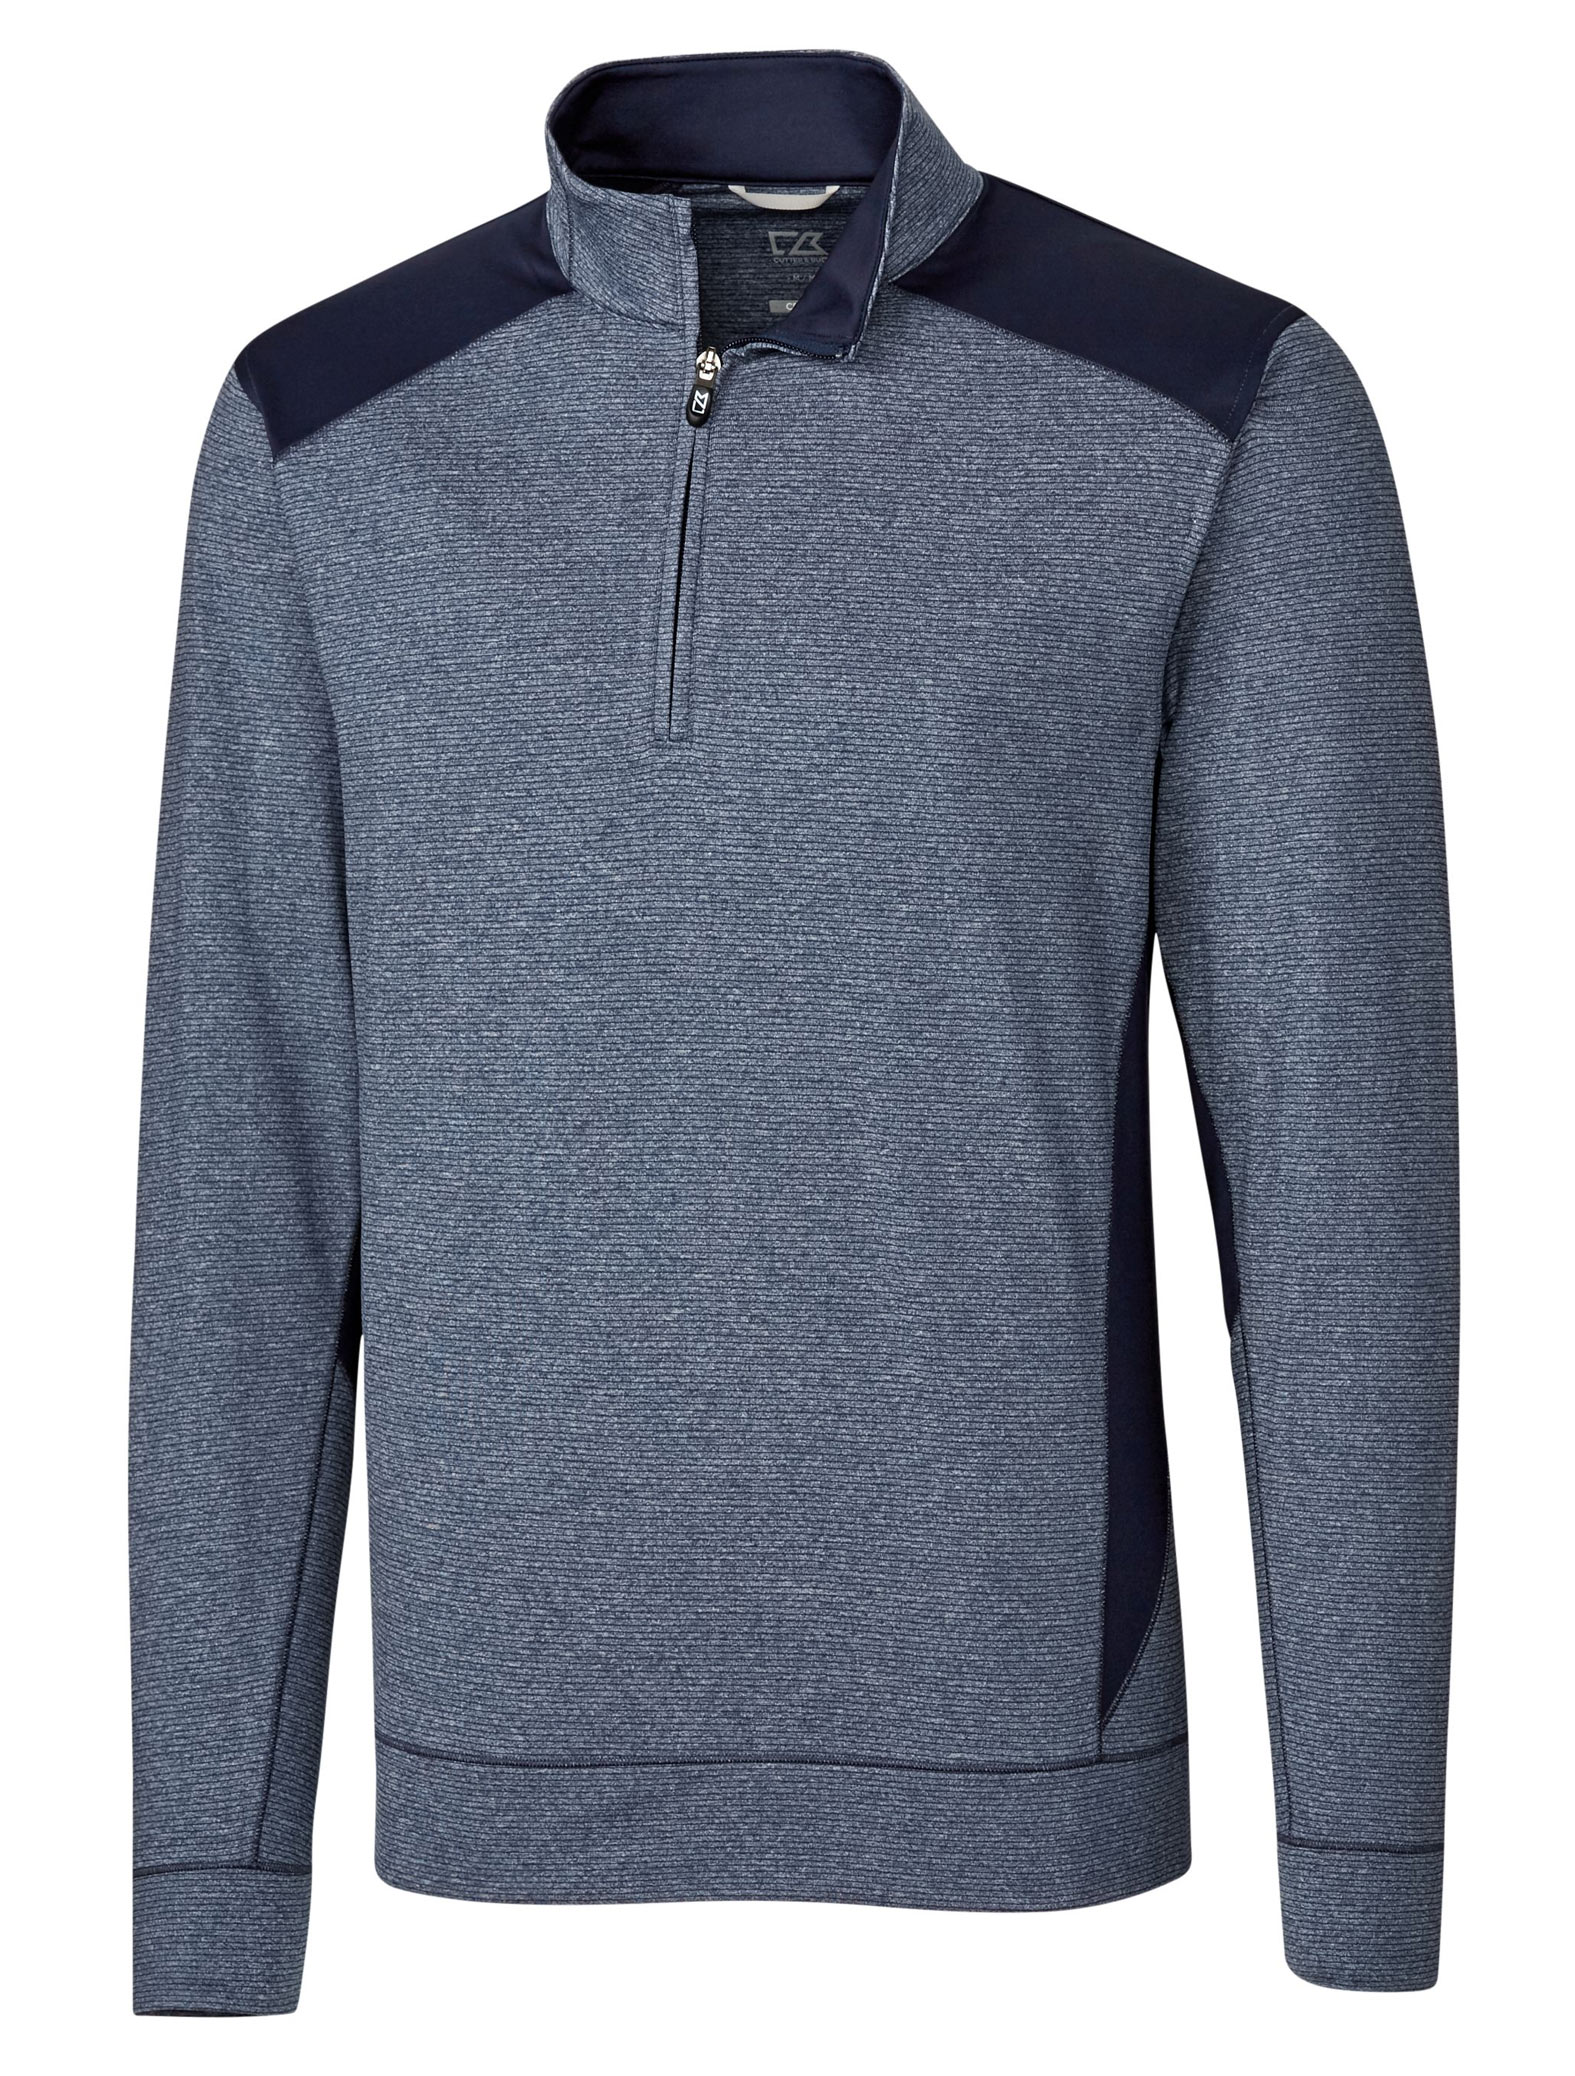 Mens Shoreline Color Block 1/4 Zip